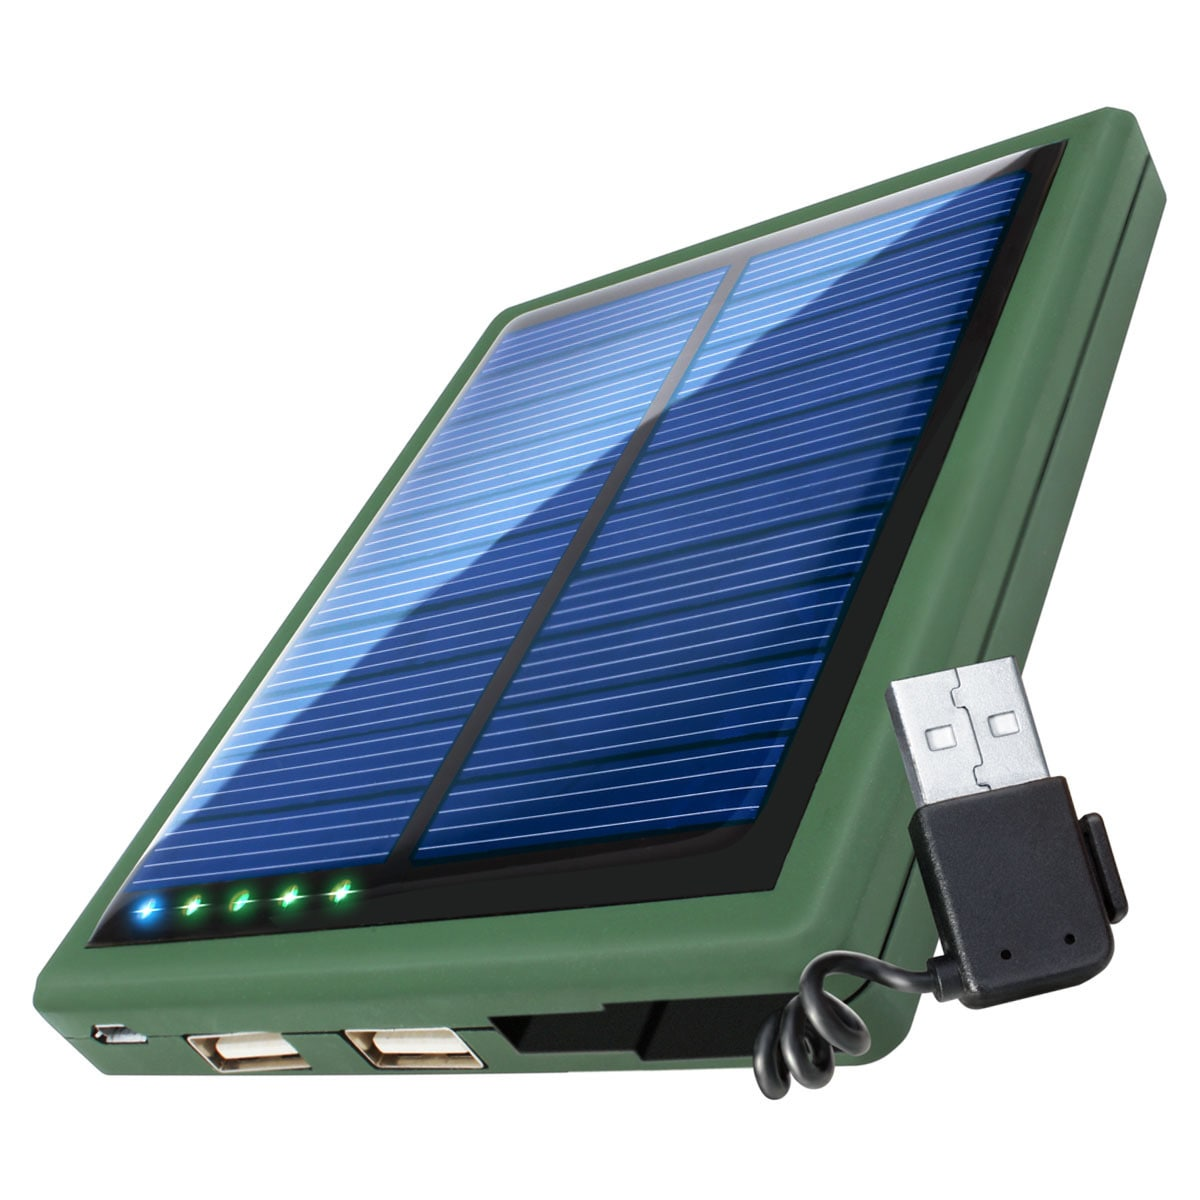 REVIVE ReStore SL5000 Solar Charger and 5000mAh Battery P...